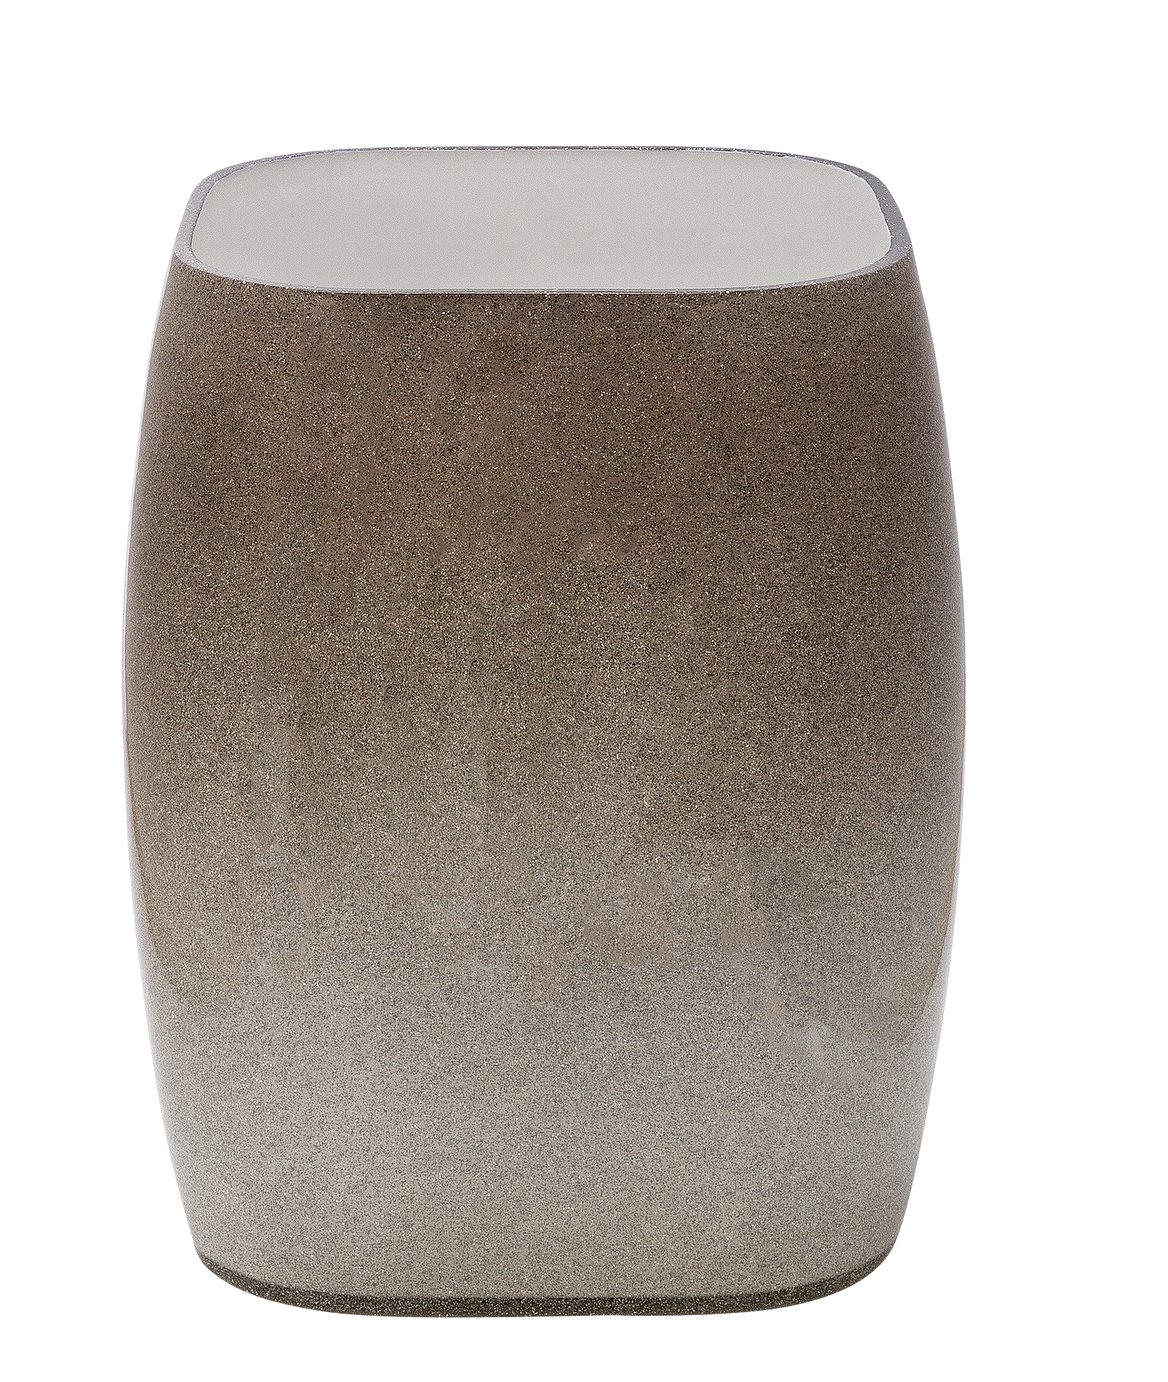 Argos Home 6.4 Litre Sparkle Bathroom Bin - Grey